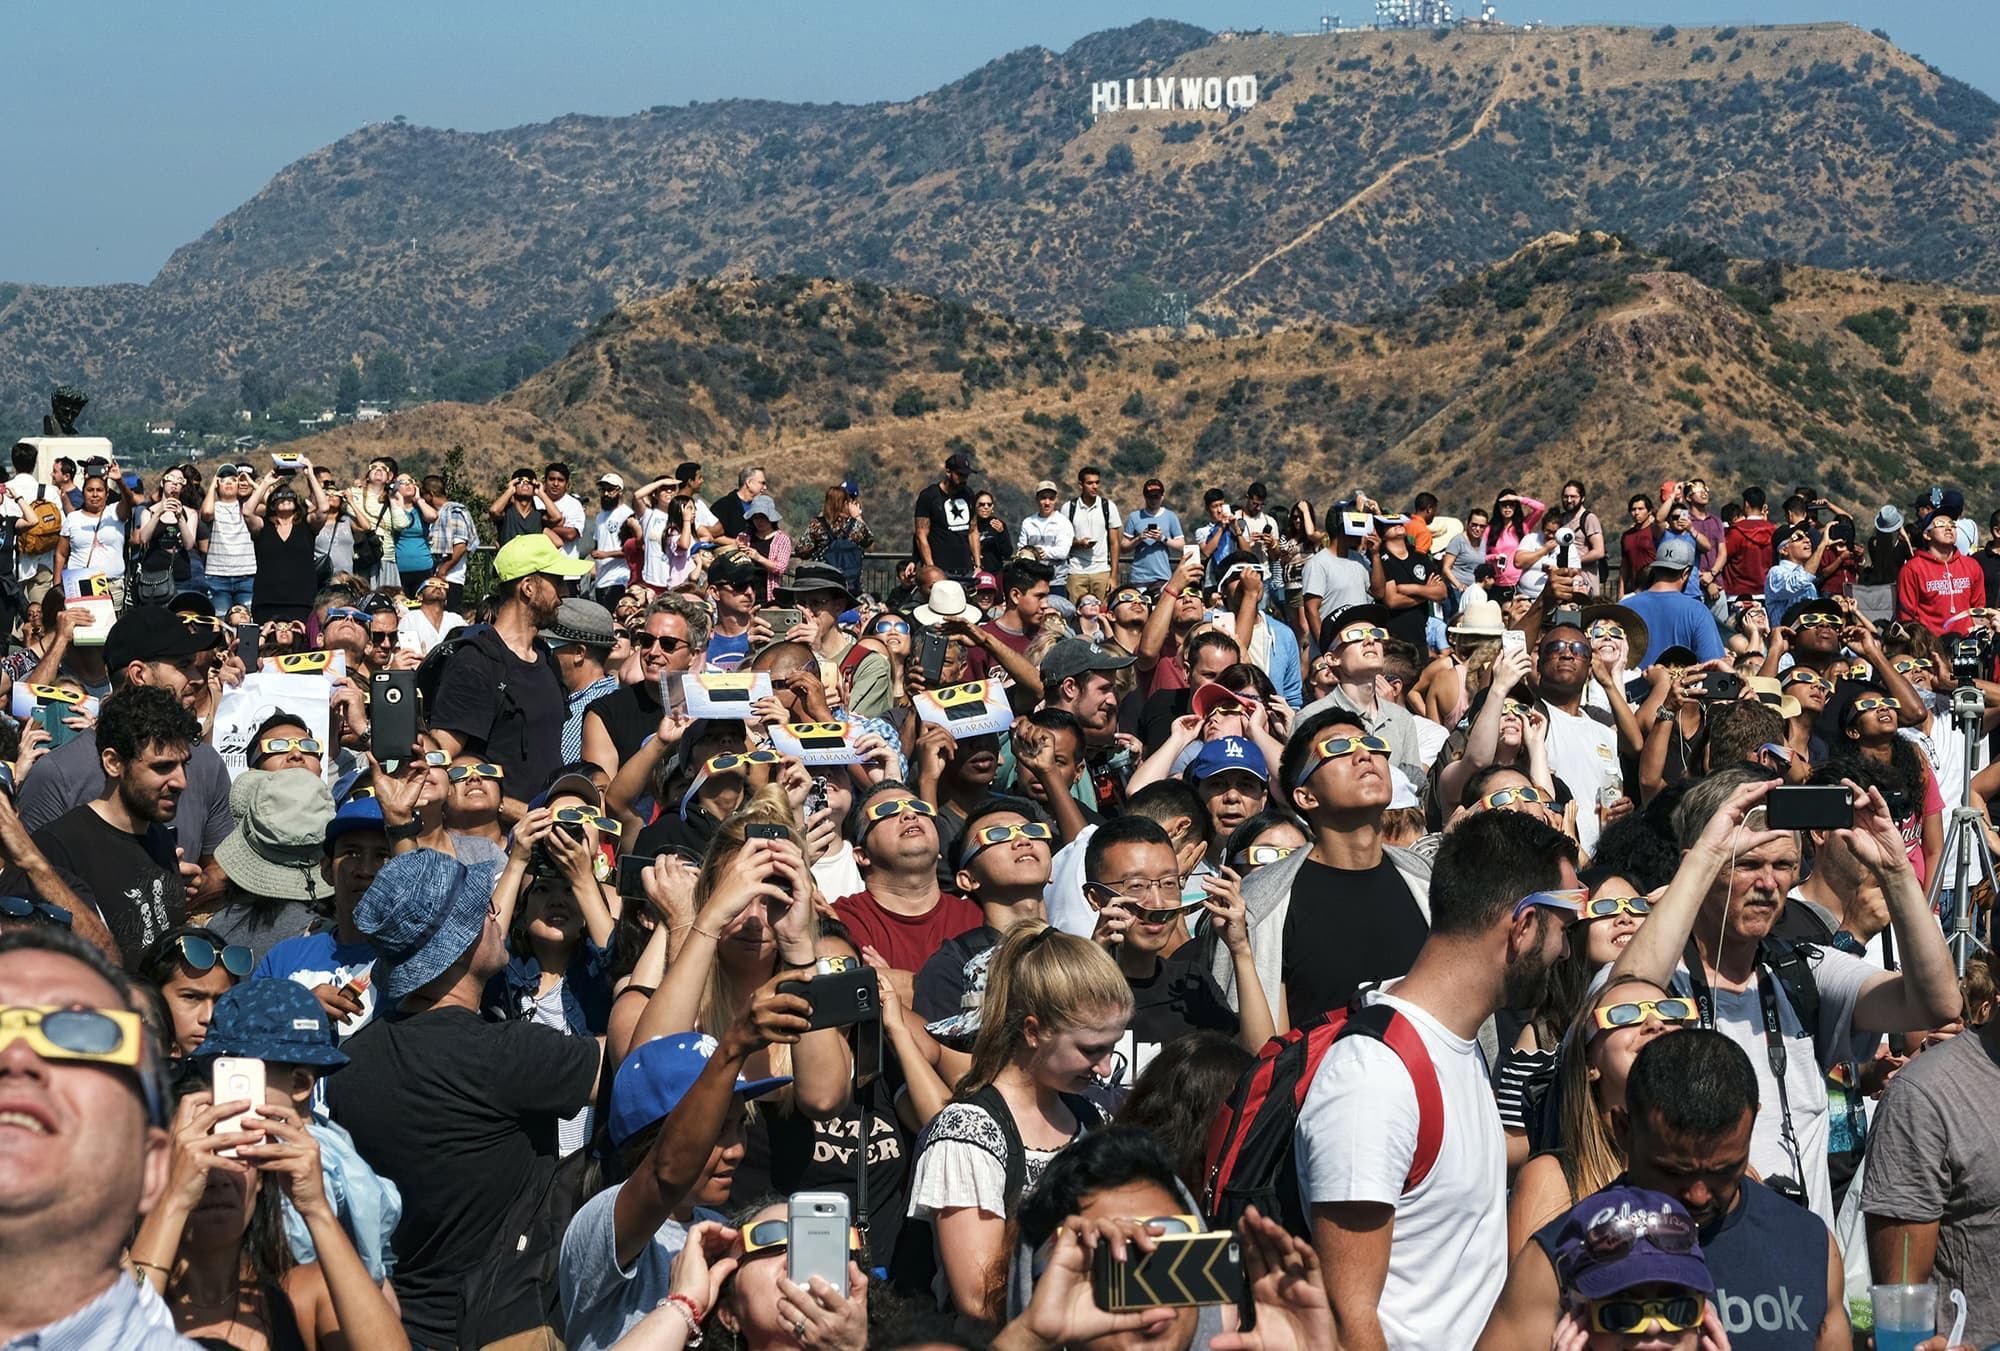 A crowd gathers in front of the Hollywood sign at the Griffith Observatory to watch the solar eclipse in Los Angeles. — AP